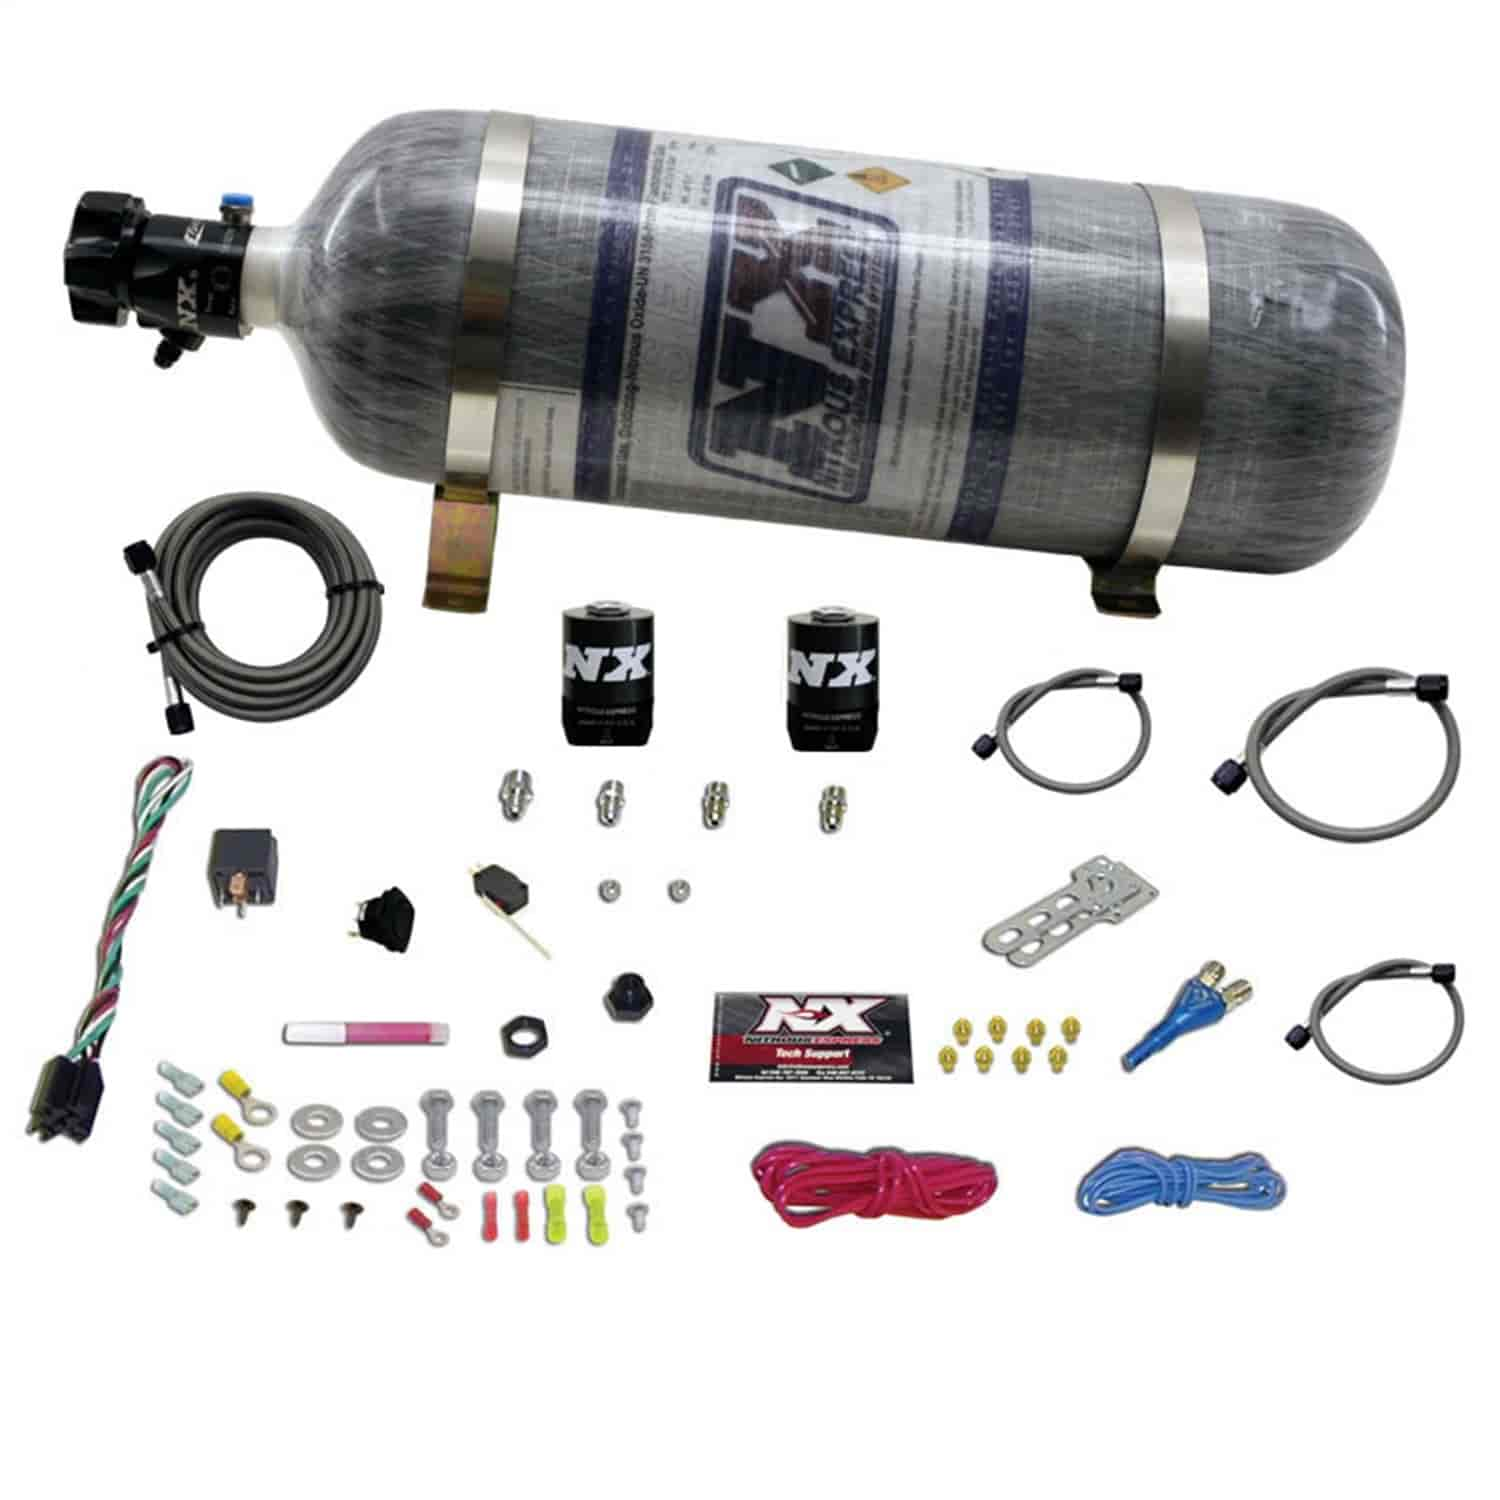 Nitrous Express 20921-12 - Nitrous Express Stage One EFI Systems